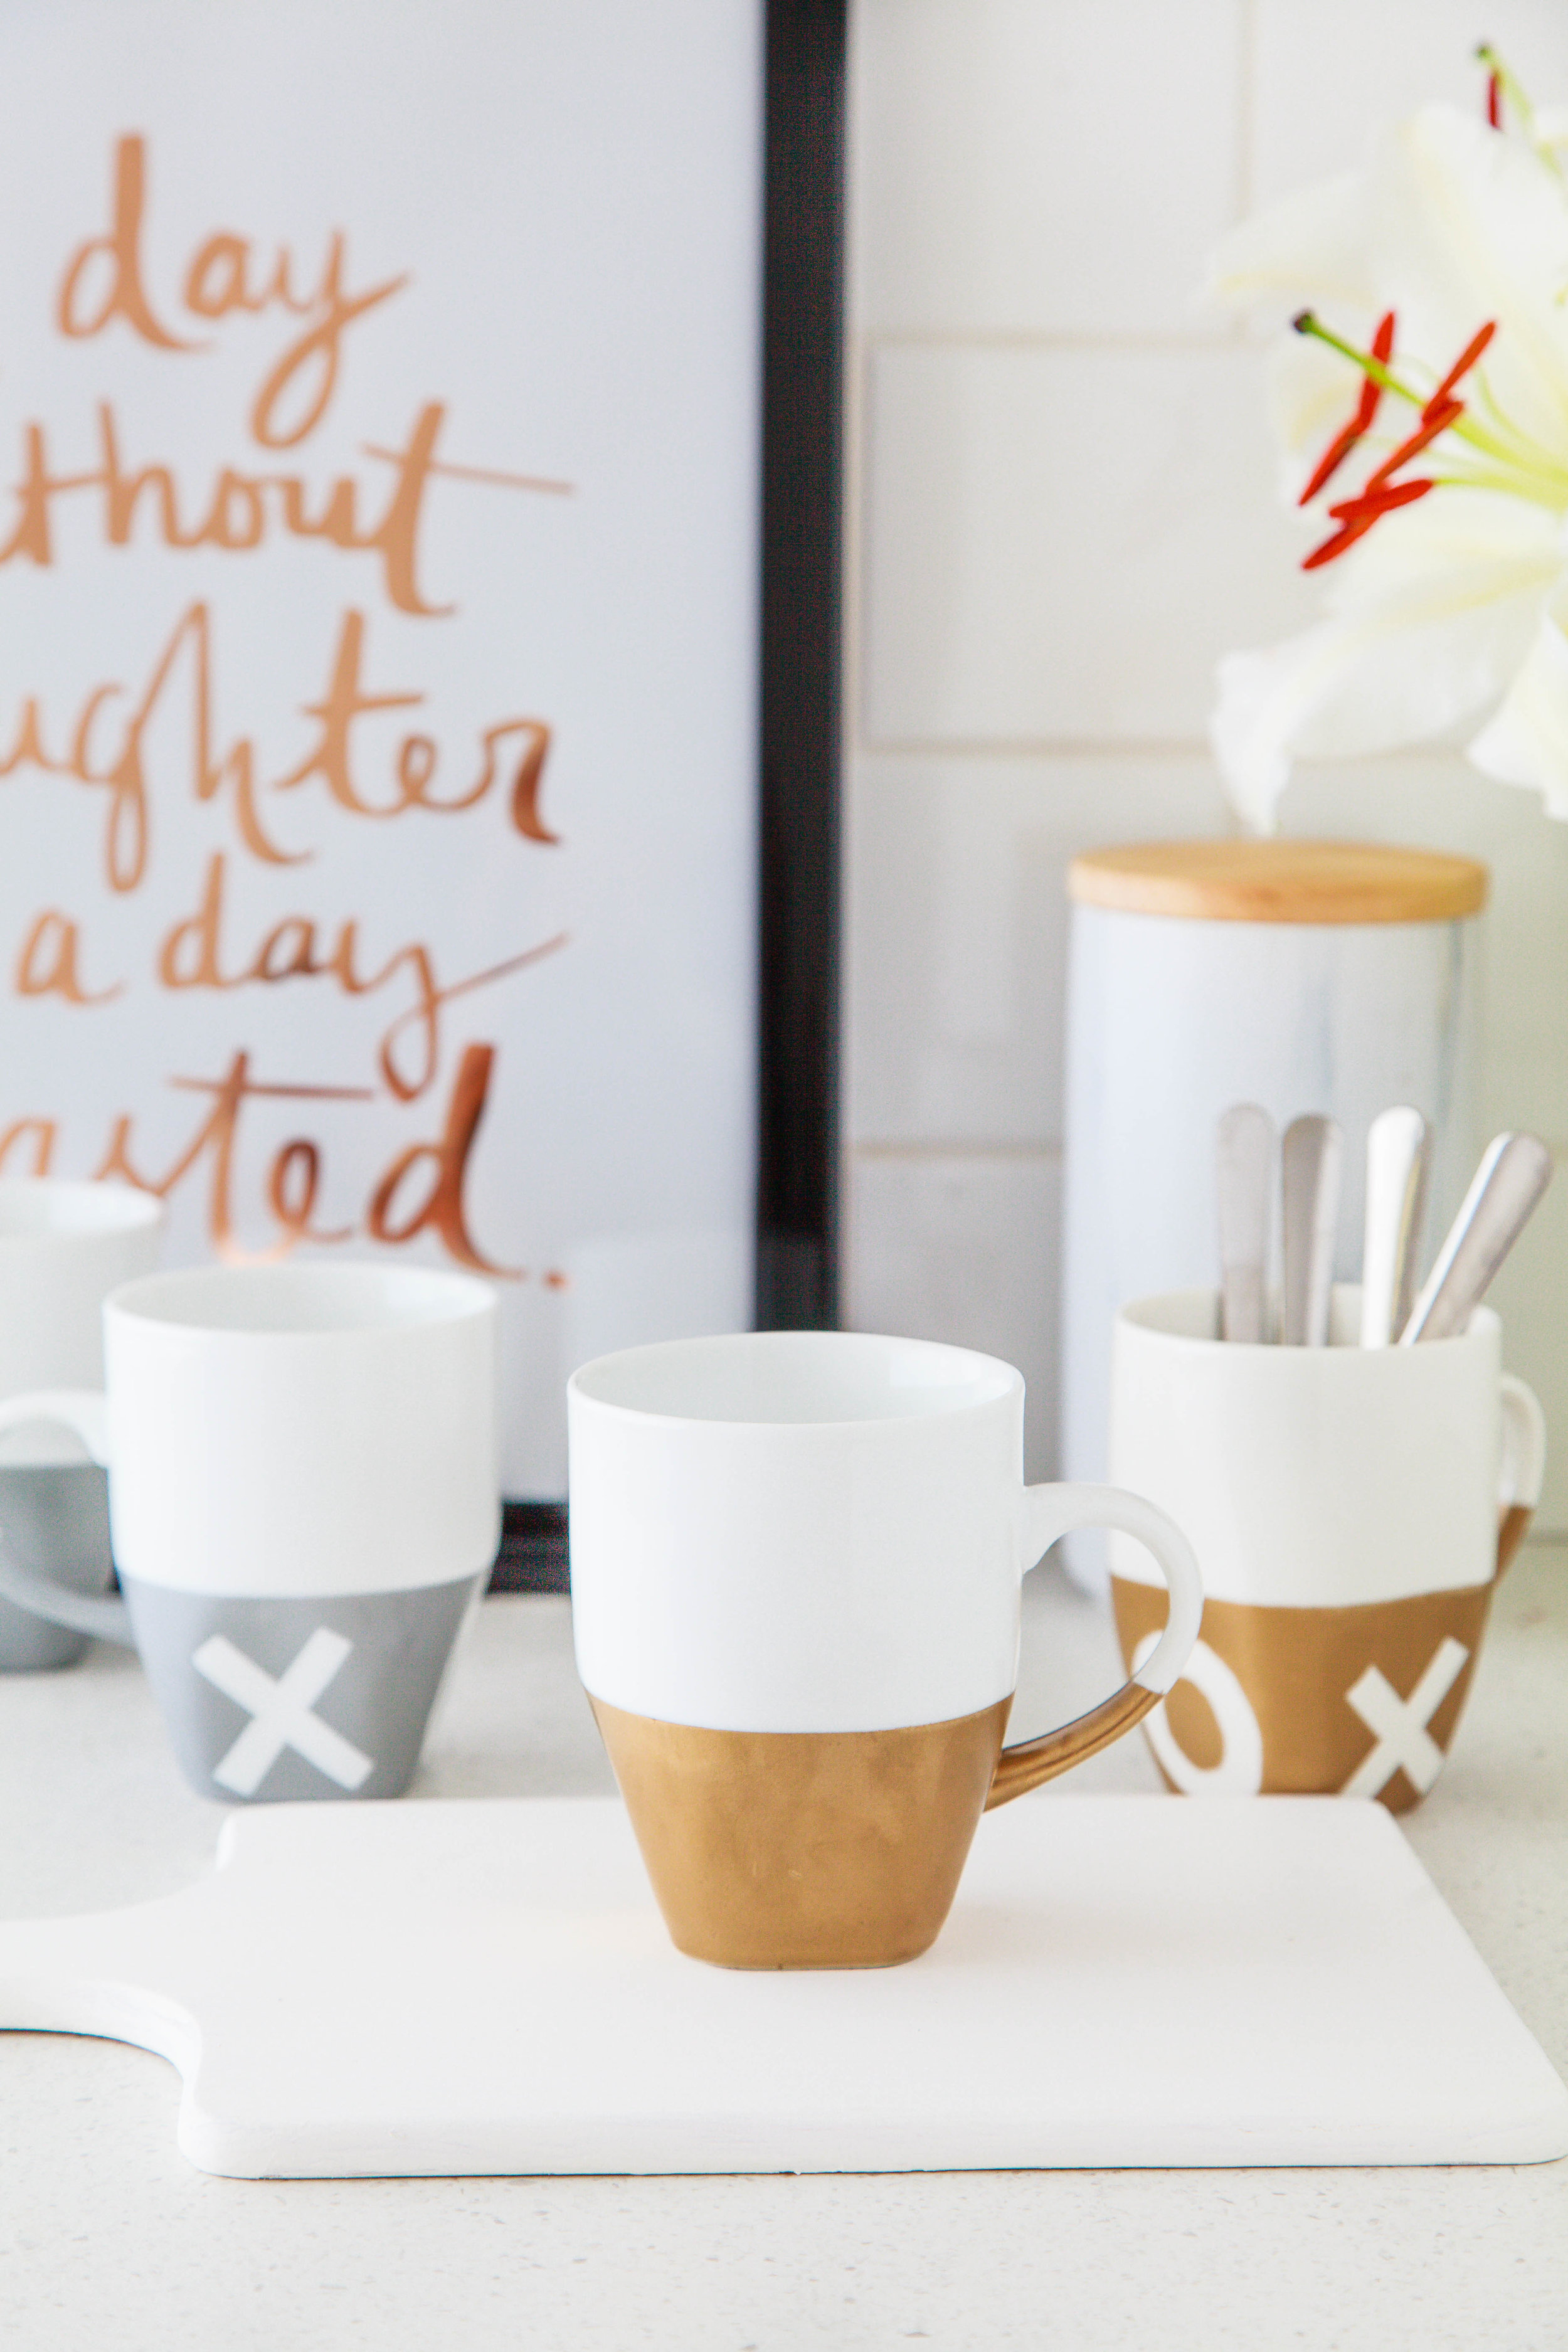 Diy Mother S Day Gift Gold Painted Mugs Video The Whimsical Wife Cook Create Decorate